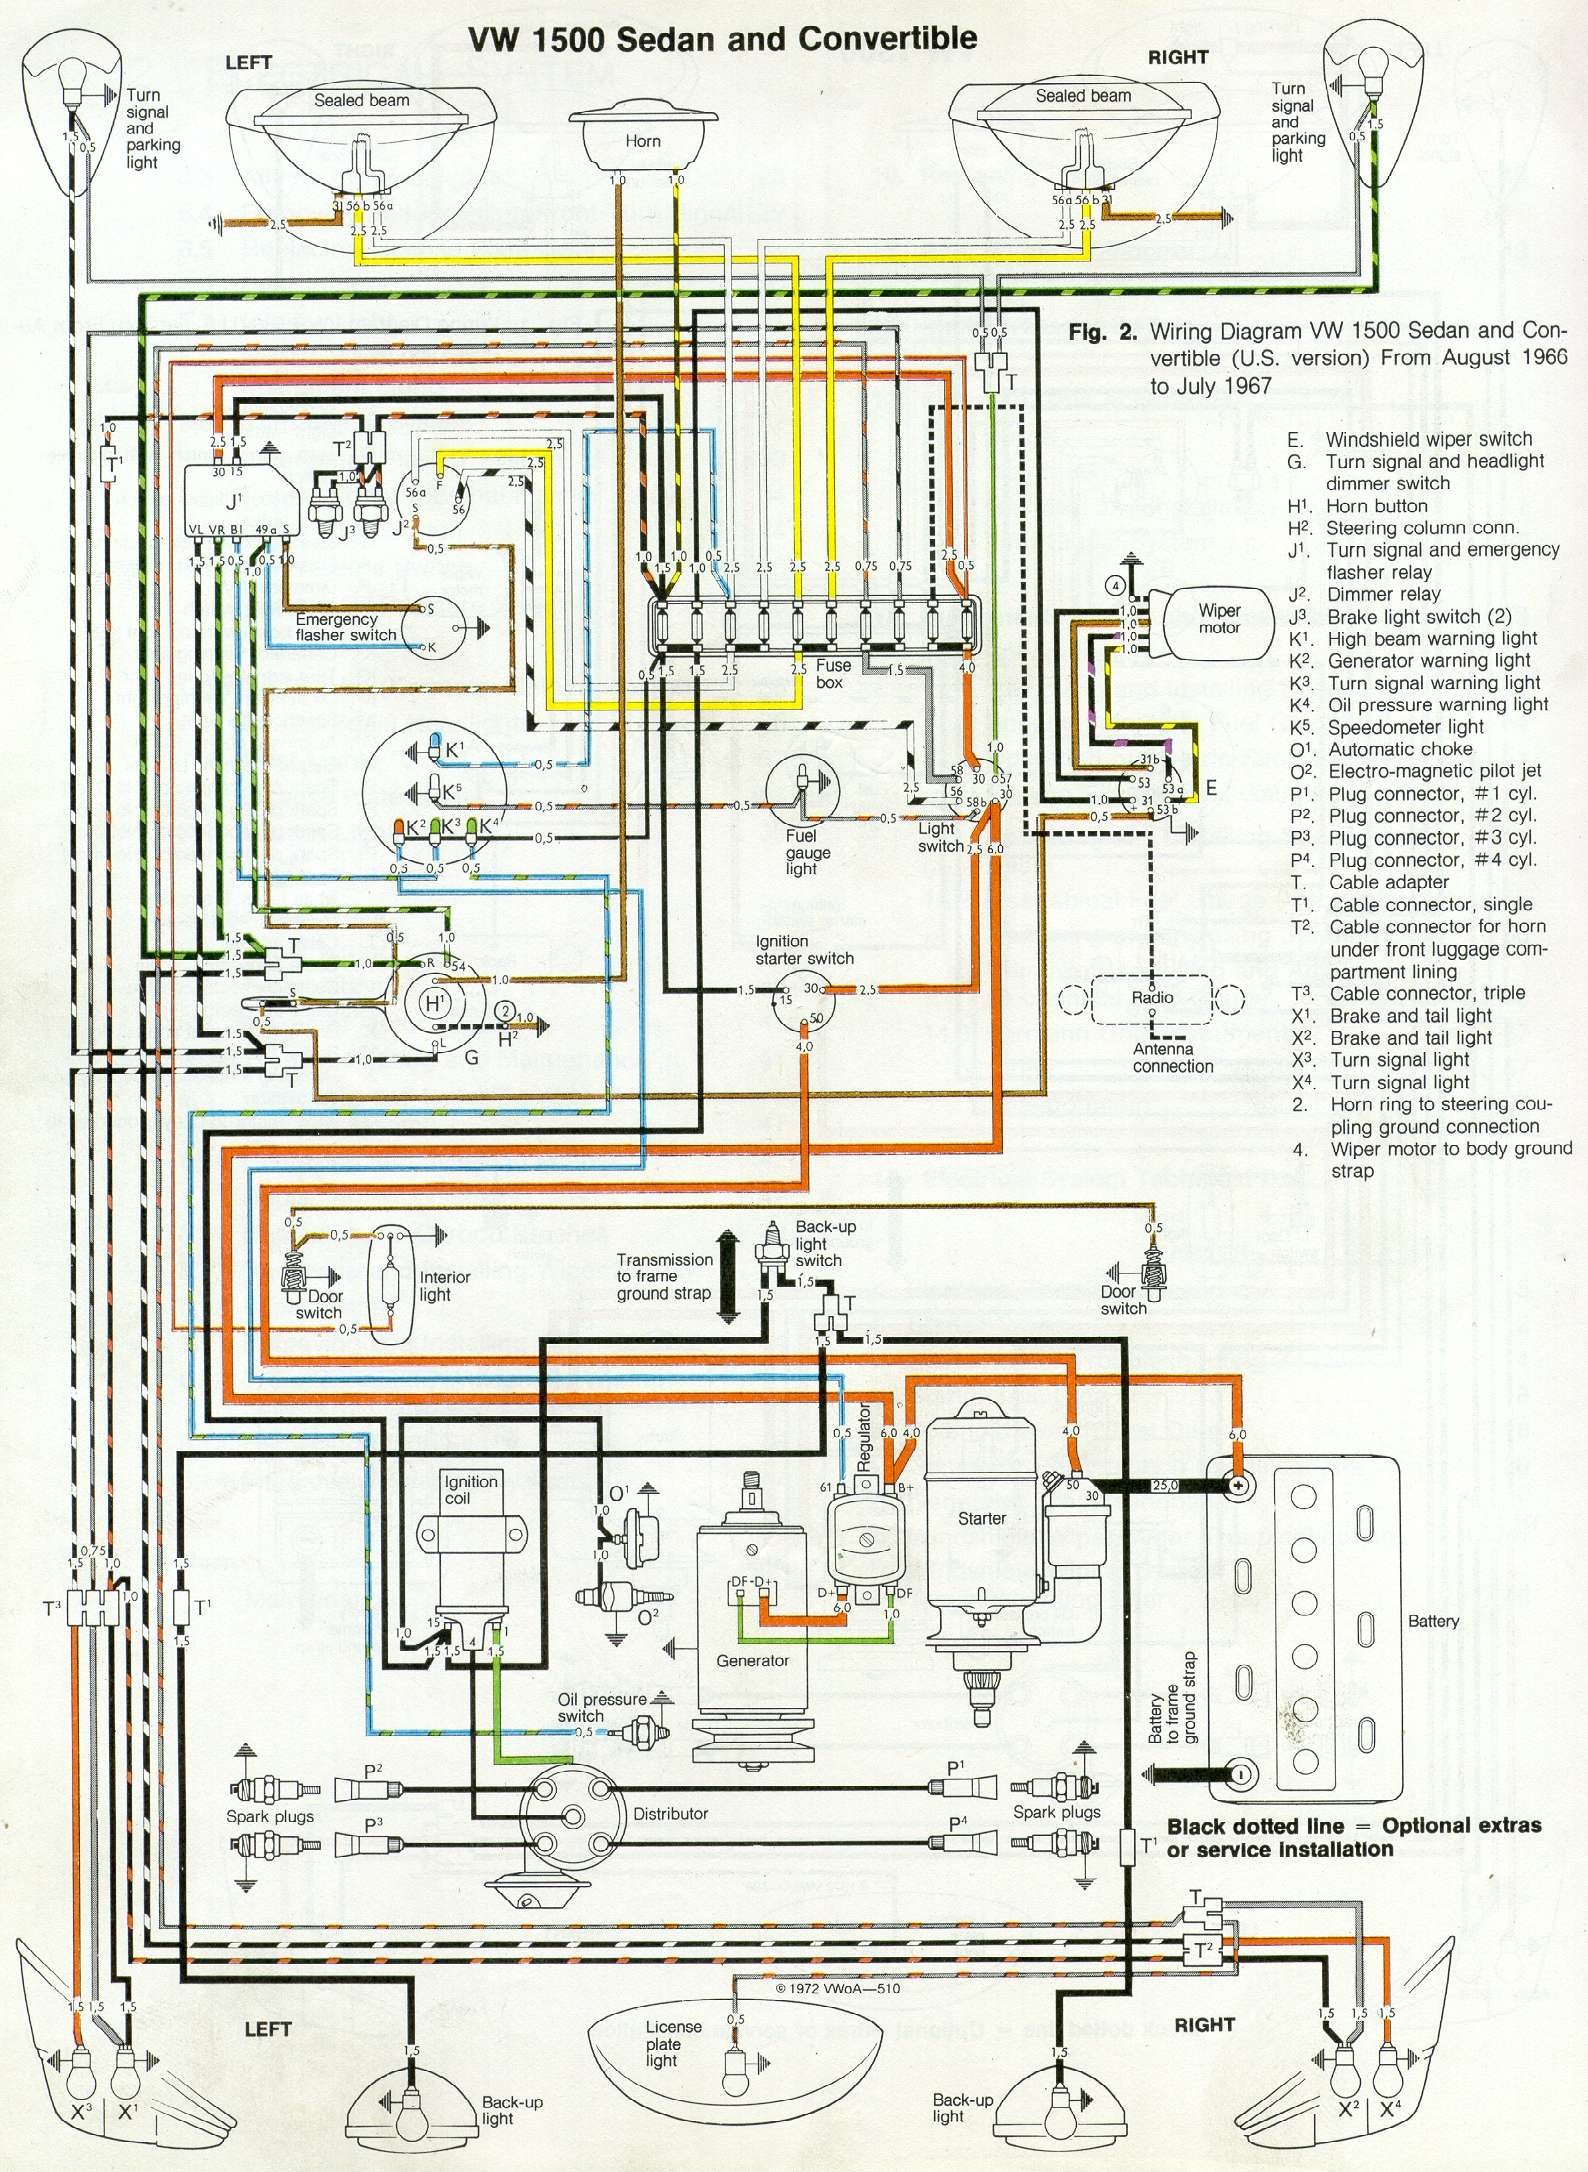 VW bug_1967 other diagrams 1973 vw beetle wiring diagram at virtualis.co